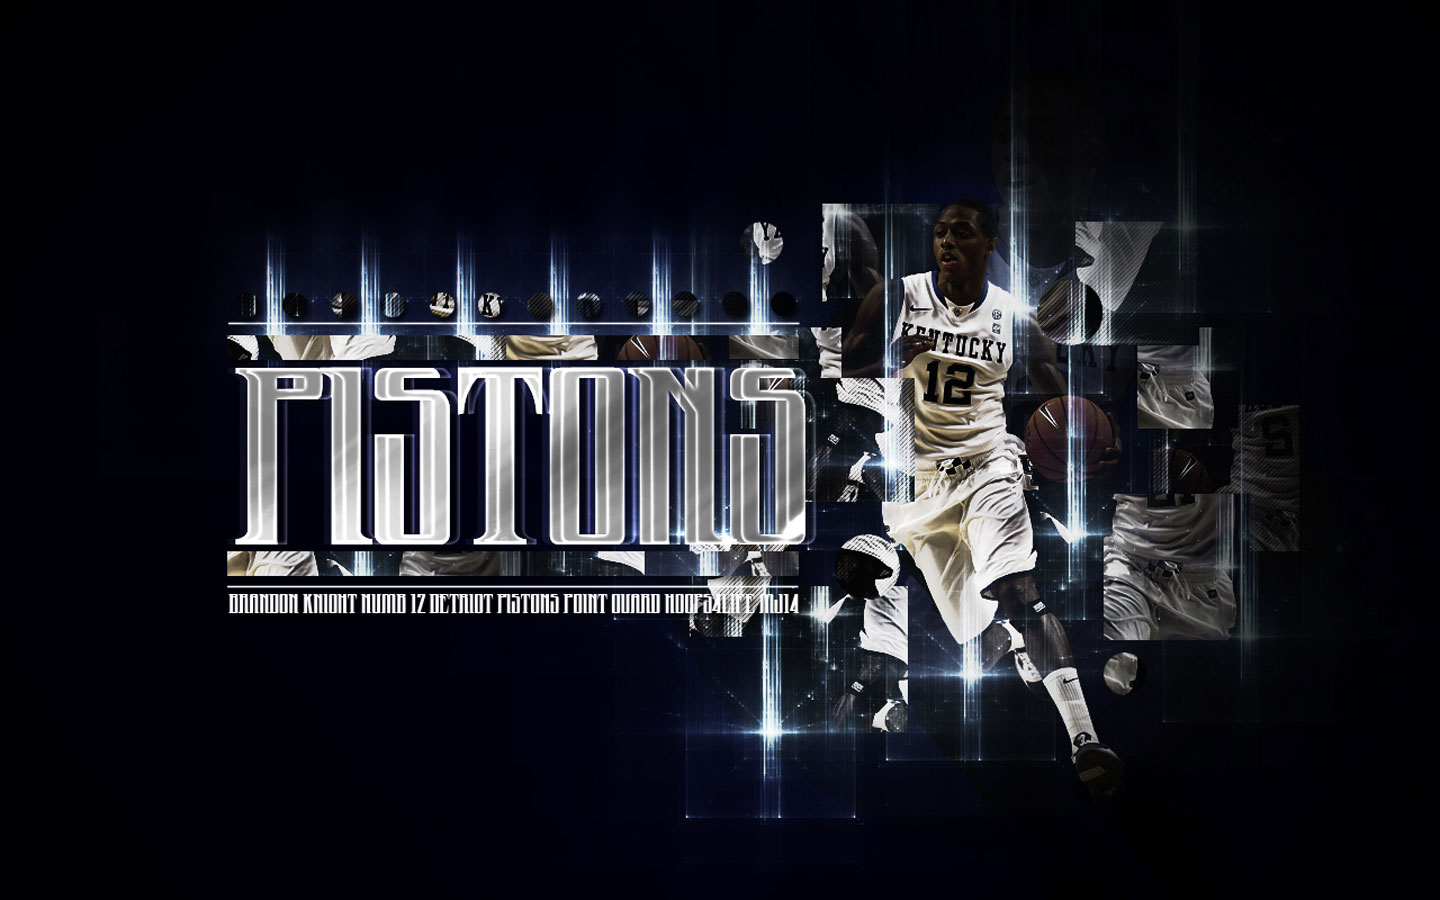 Kentucky Wallpaper 1440x900